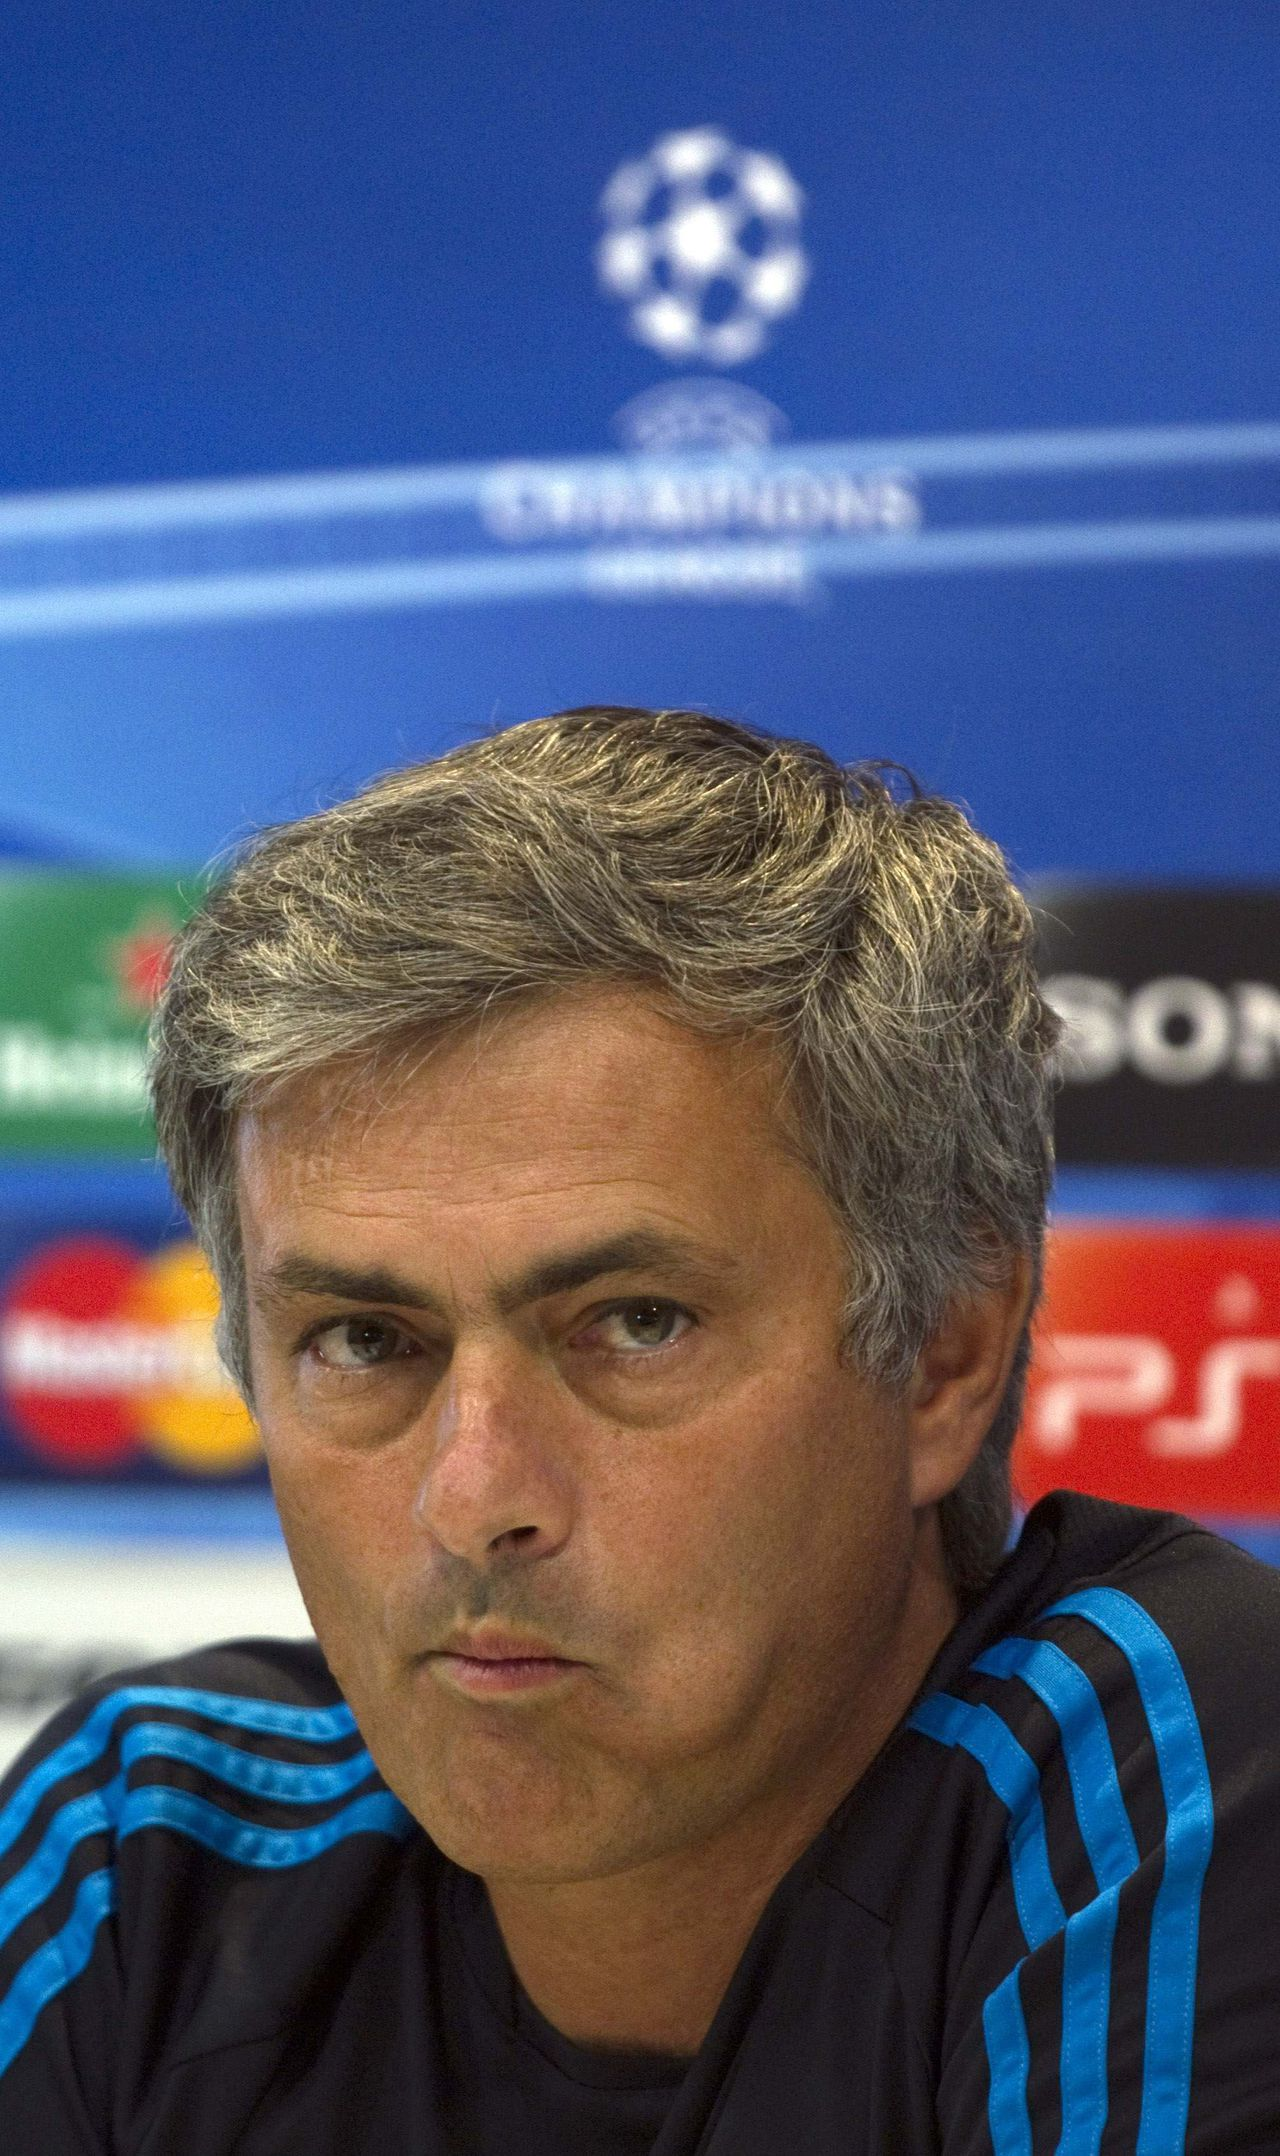 Real Madrid's coach Jose Mourinho attends a news conference after his team's training session at Valdebebas training ground in Madrid October 17, 2011, ahead of their Champions League match against Olympique Lyon. REUTERS/Sergio Perez (SPAIN - Tags: SPORT SOCCER HEADSHOT)